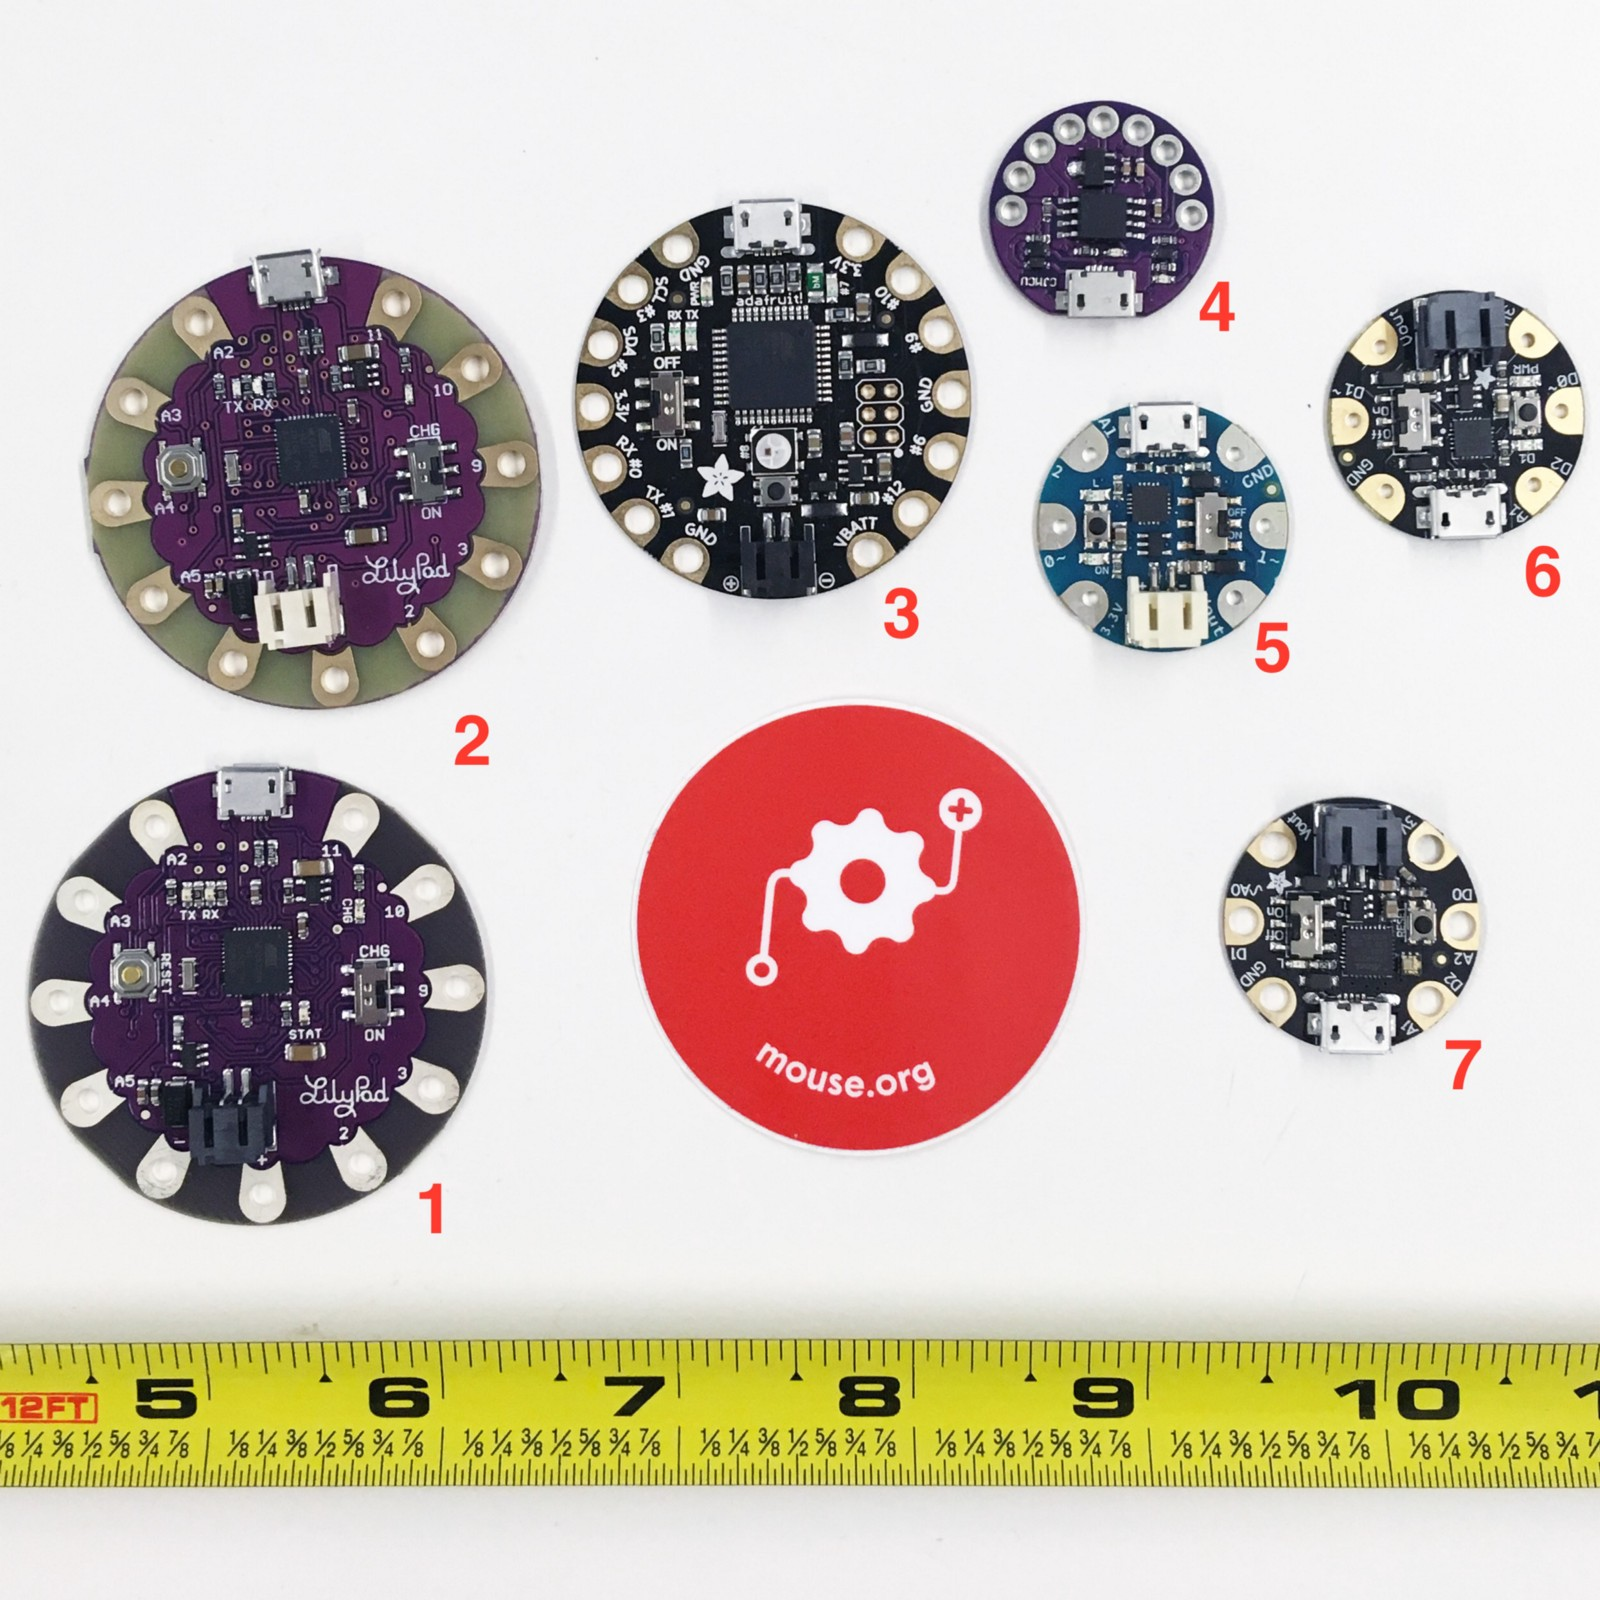 A picture of 7 different sewable microcontrollers and a Mouse sticker